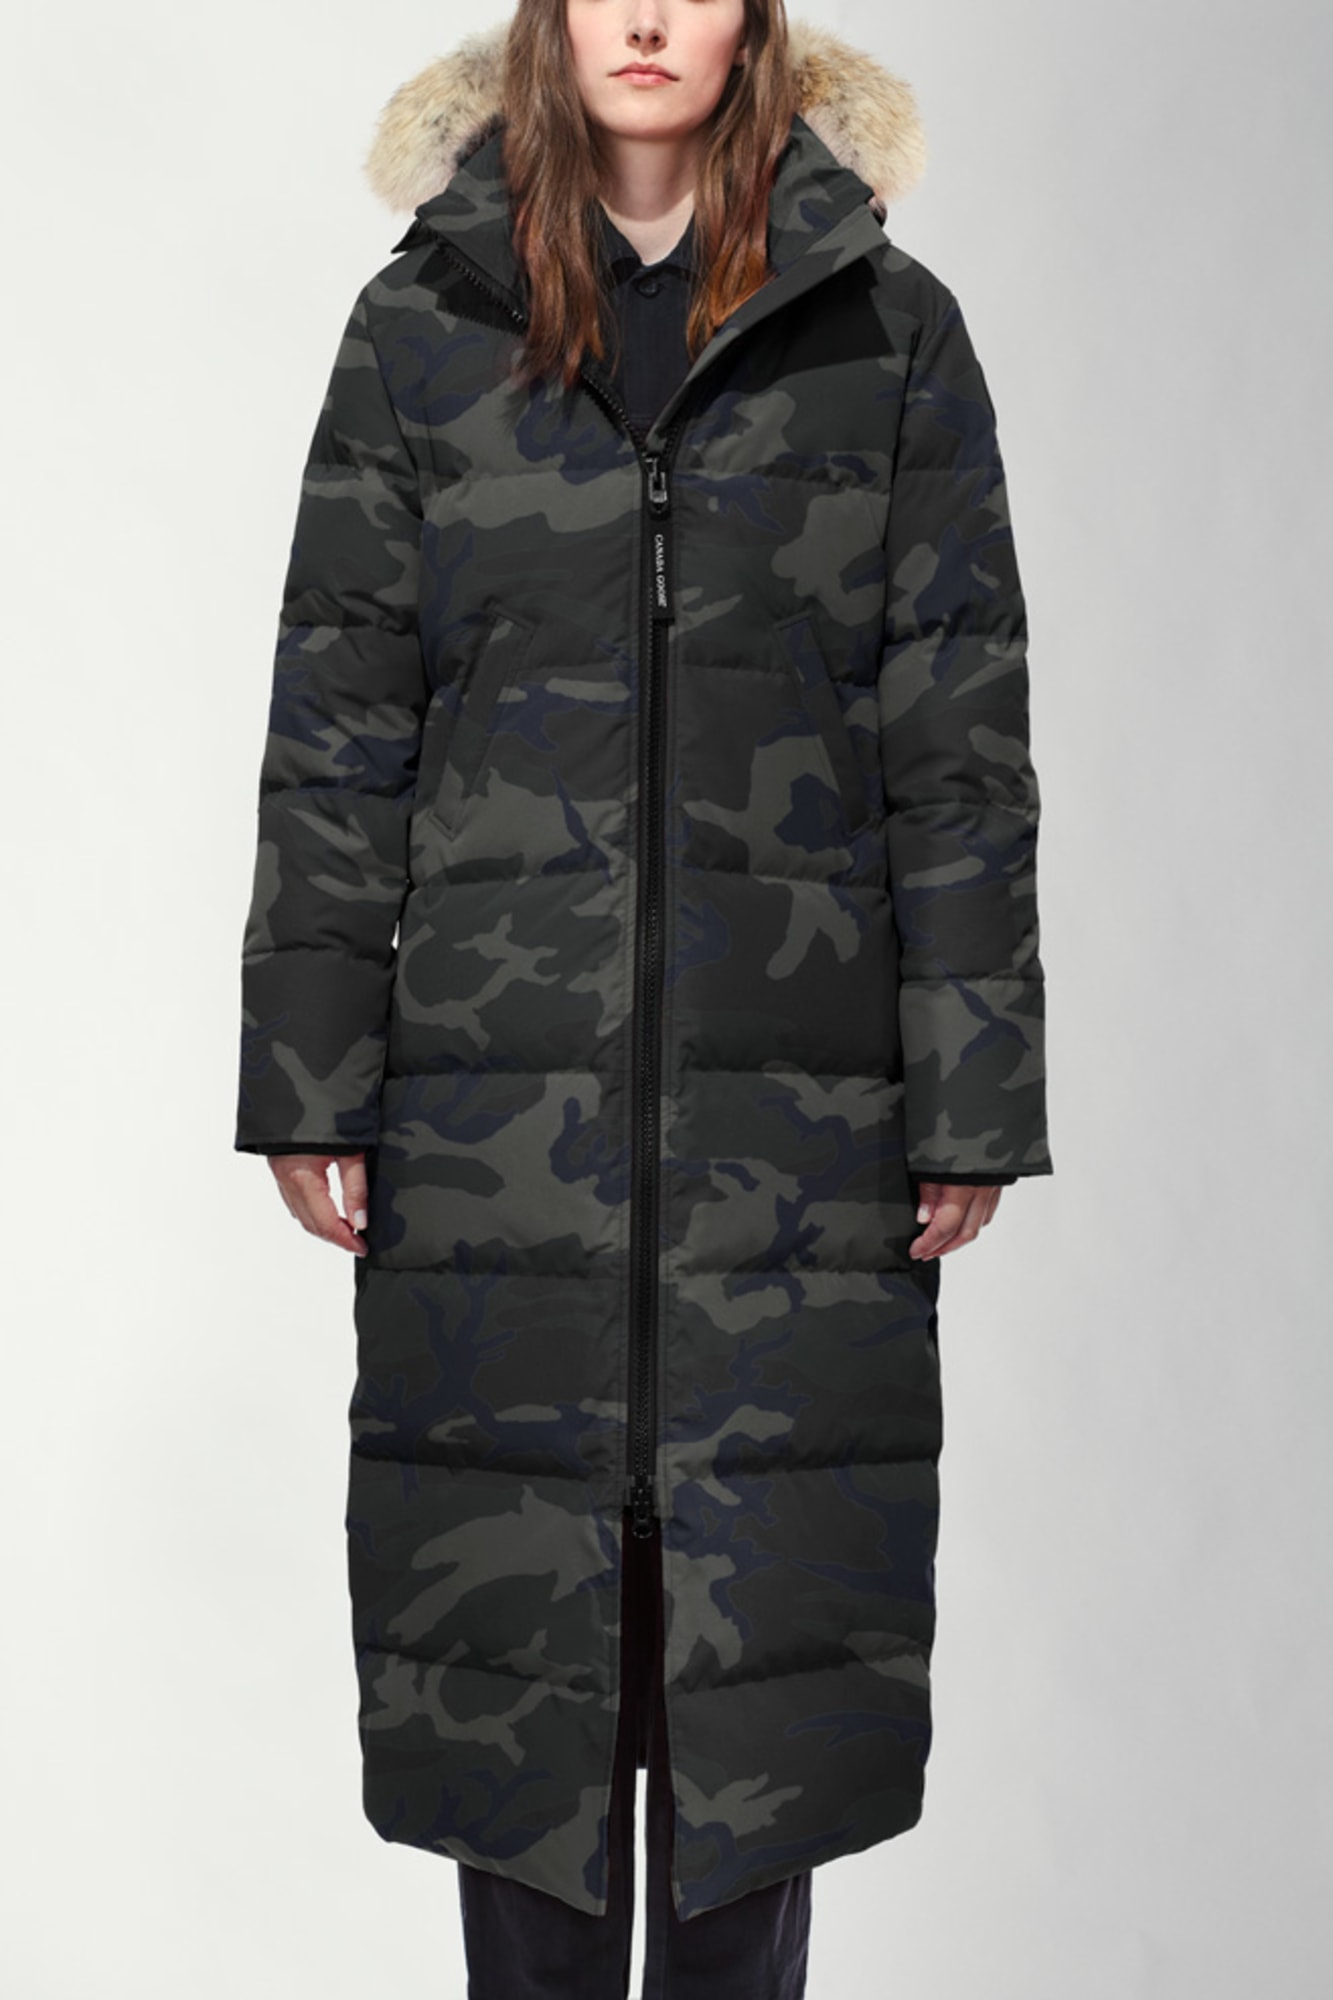 977f2d21e89 Women s Mystique Parka Black Label